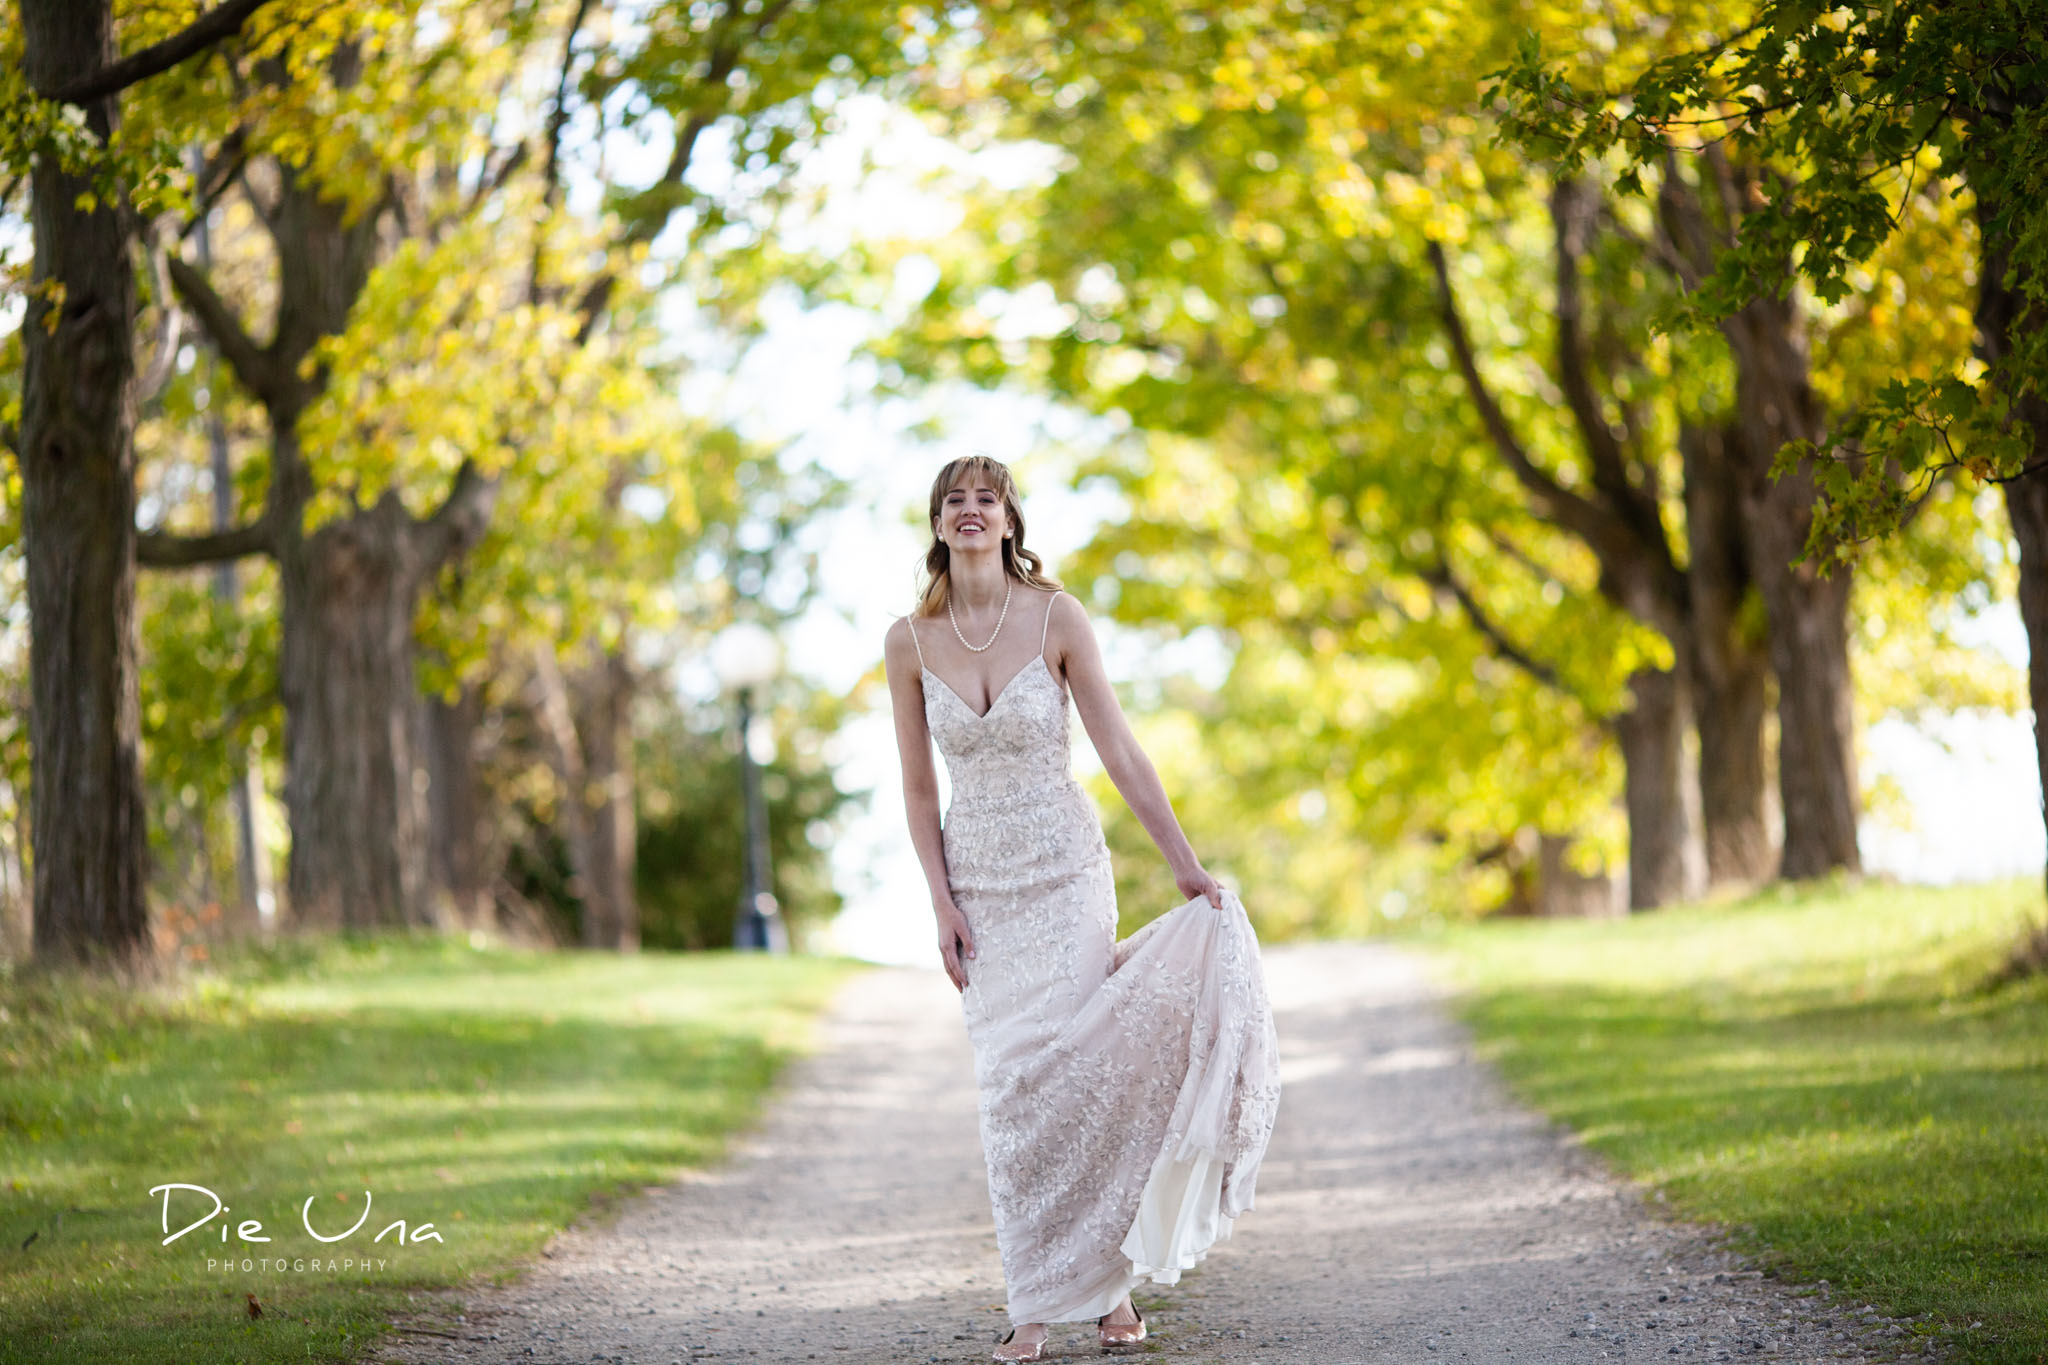 bride twirling wedding dress on tree lined driveway for wedding portraits.jpg